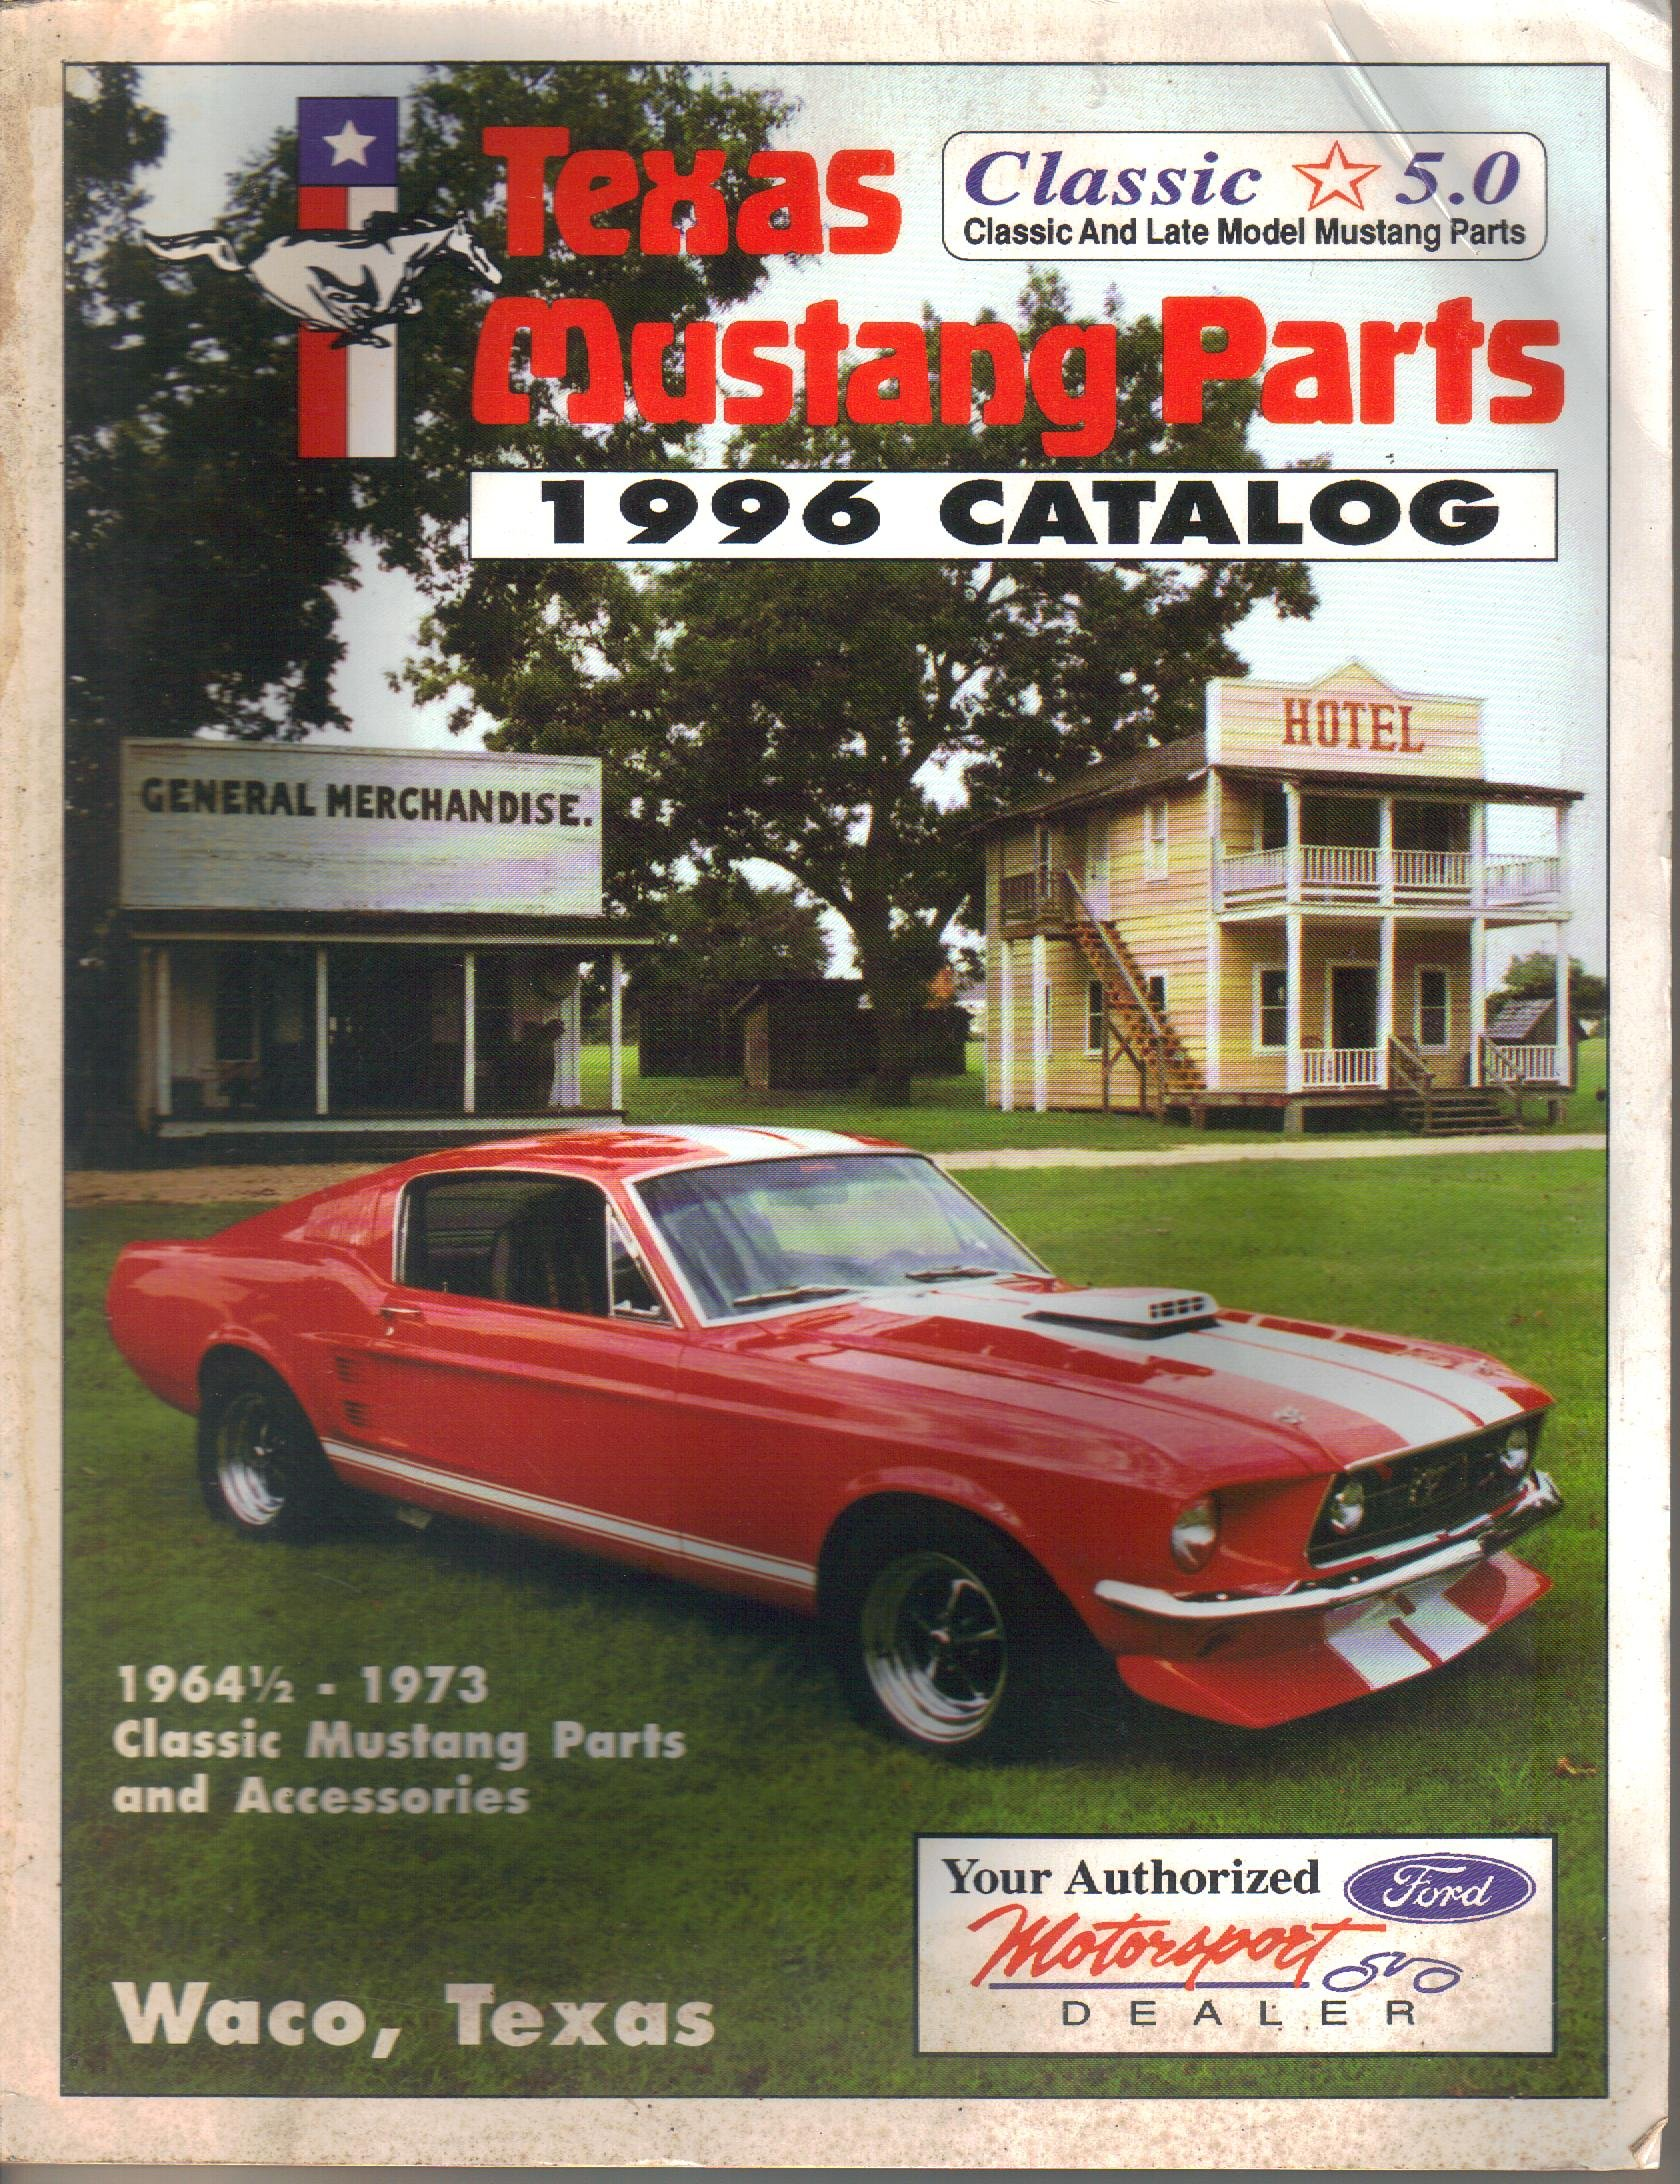 1996 texas mustang parts catalog classic and late mustang parts accessories 1964 1 2 1973 texas mustang parts not stated editor amazon com books